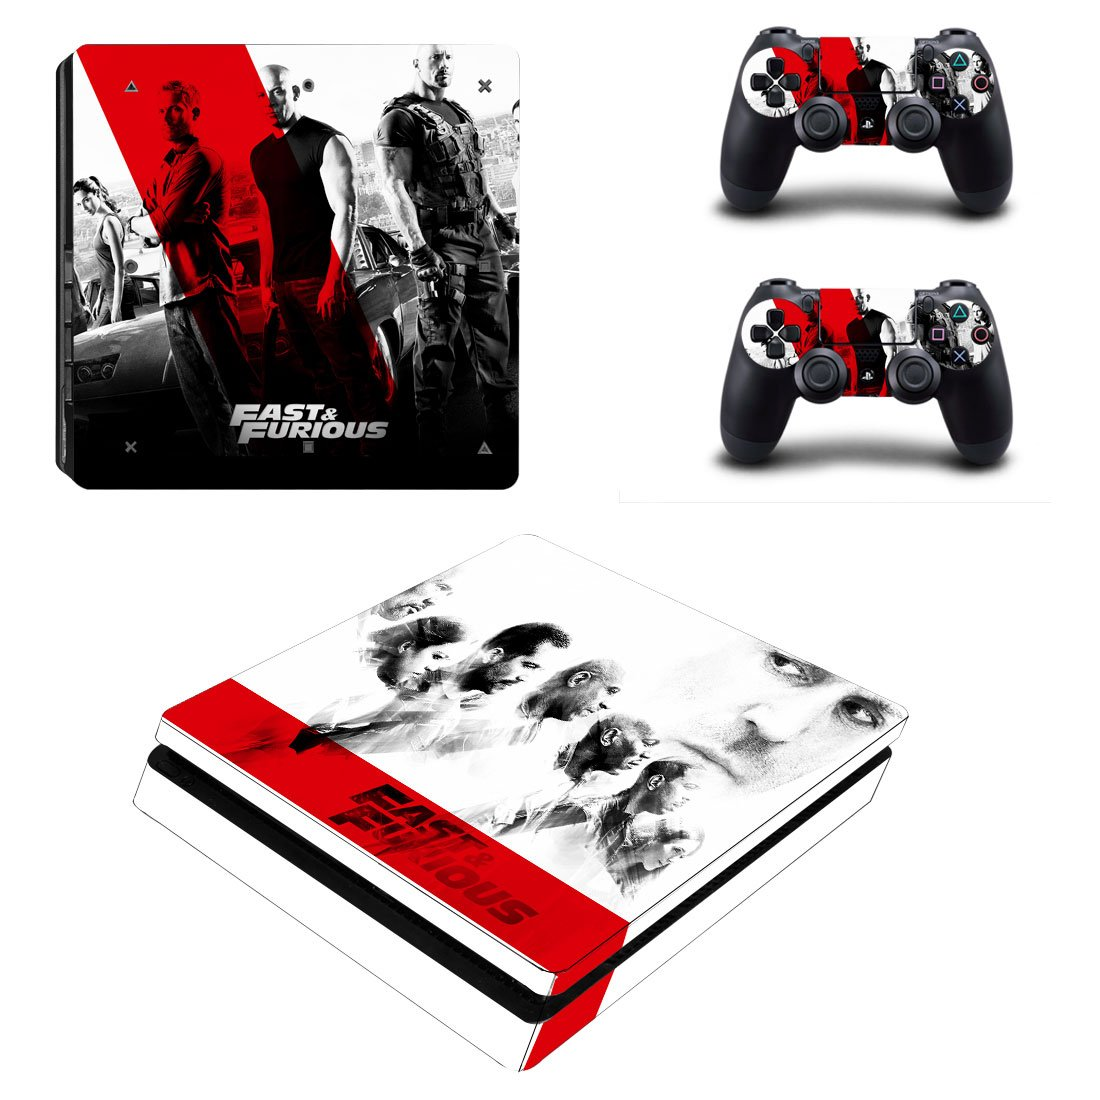 Fast And Furious PS4 Slim Skin Sticker Decals PS4 Console And Controllers Protect Your PS4